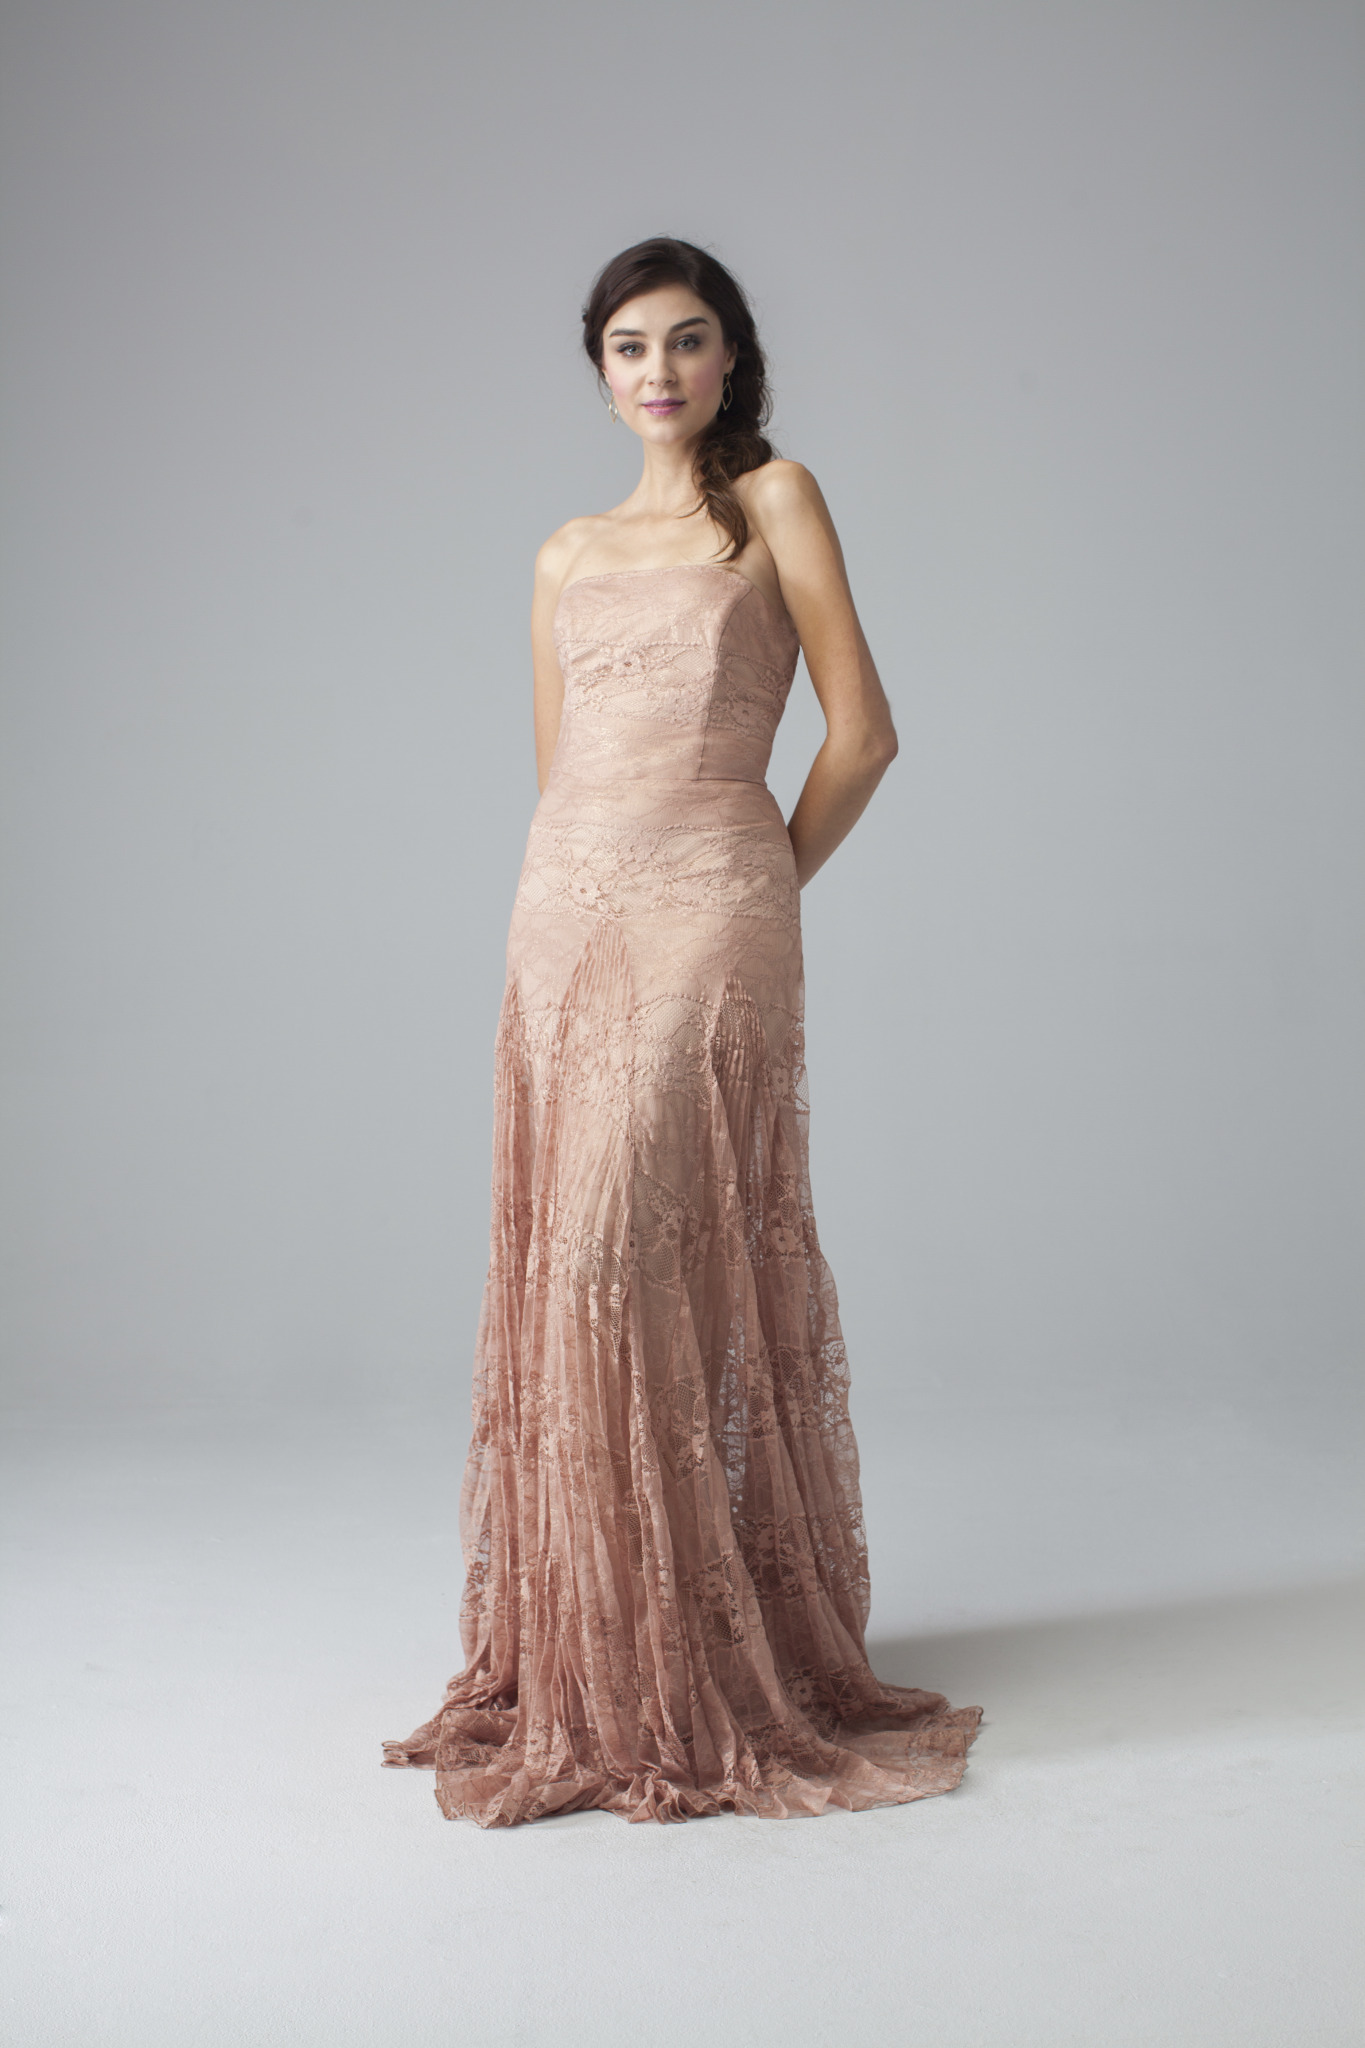 Loverly gown, perfect for both proms and weddings!